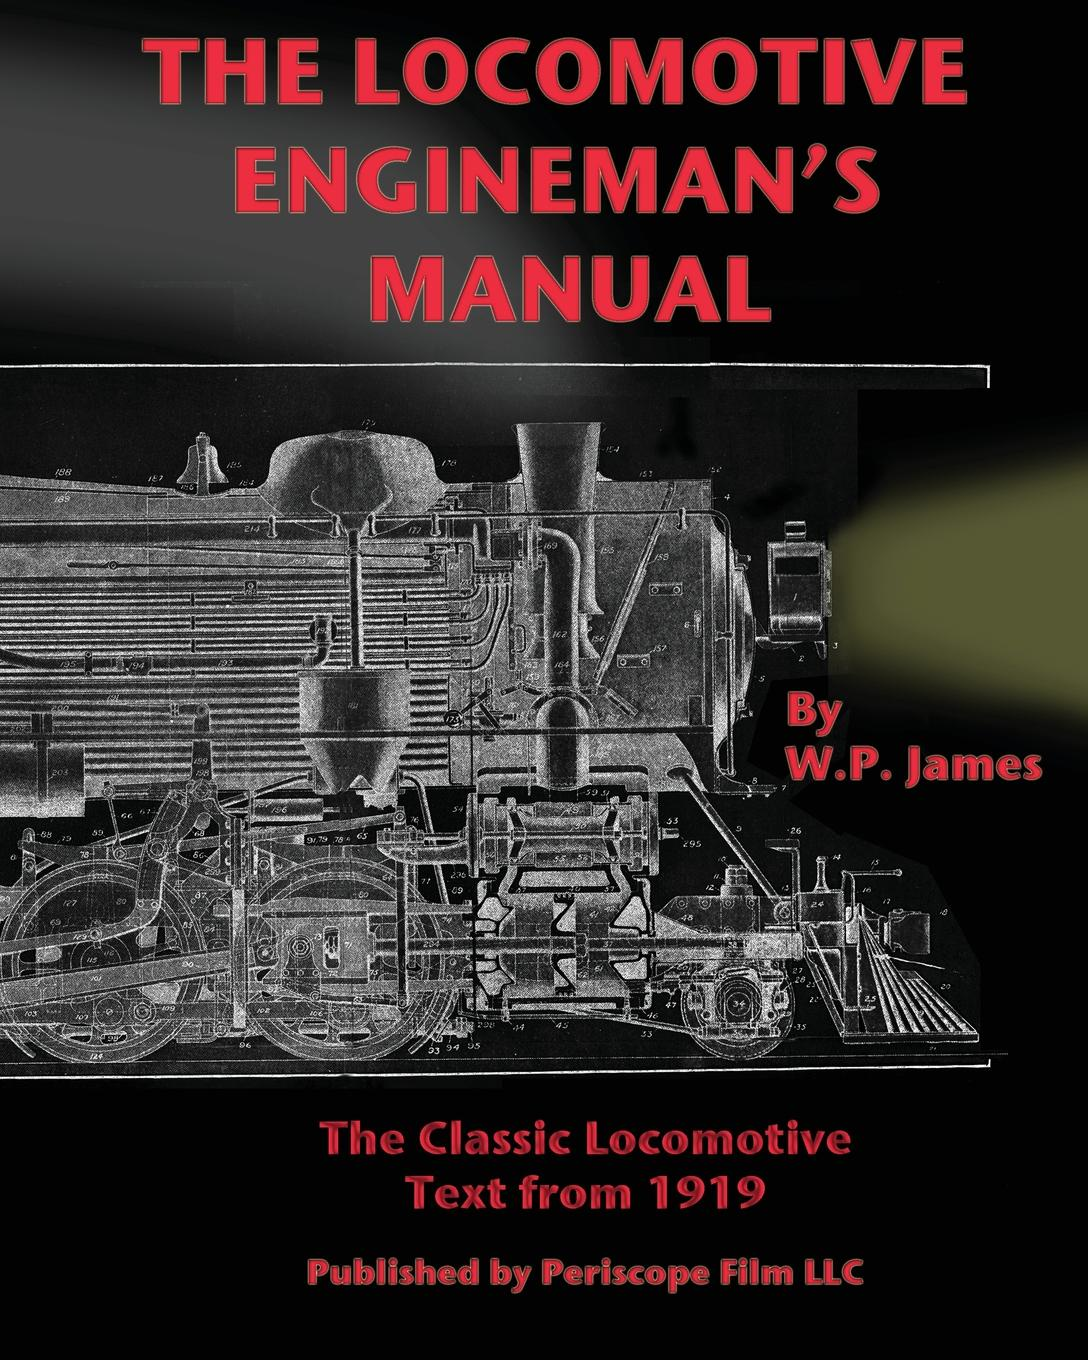 W. P. James The Locomotive Engineman's Manual